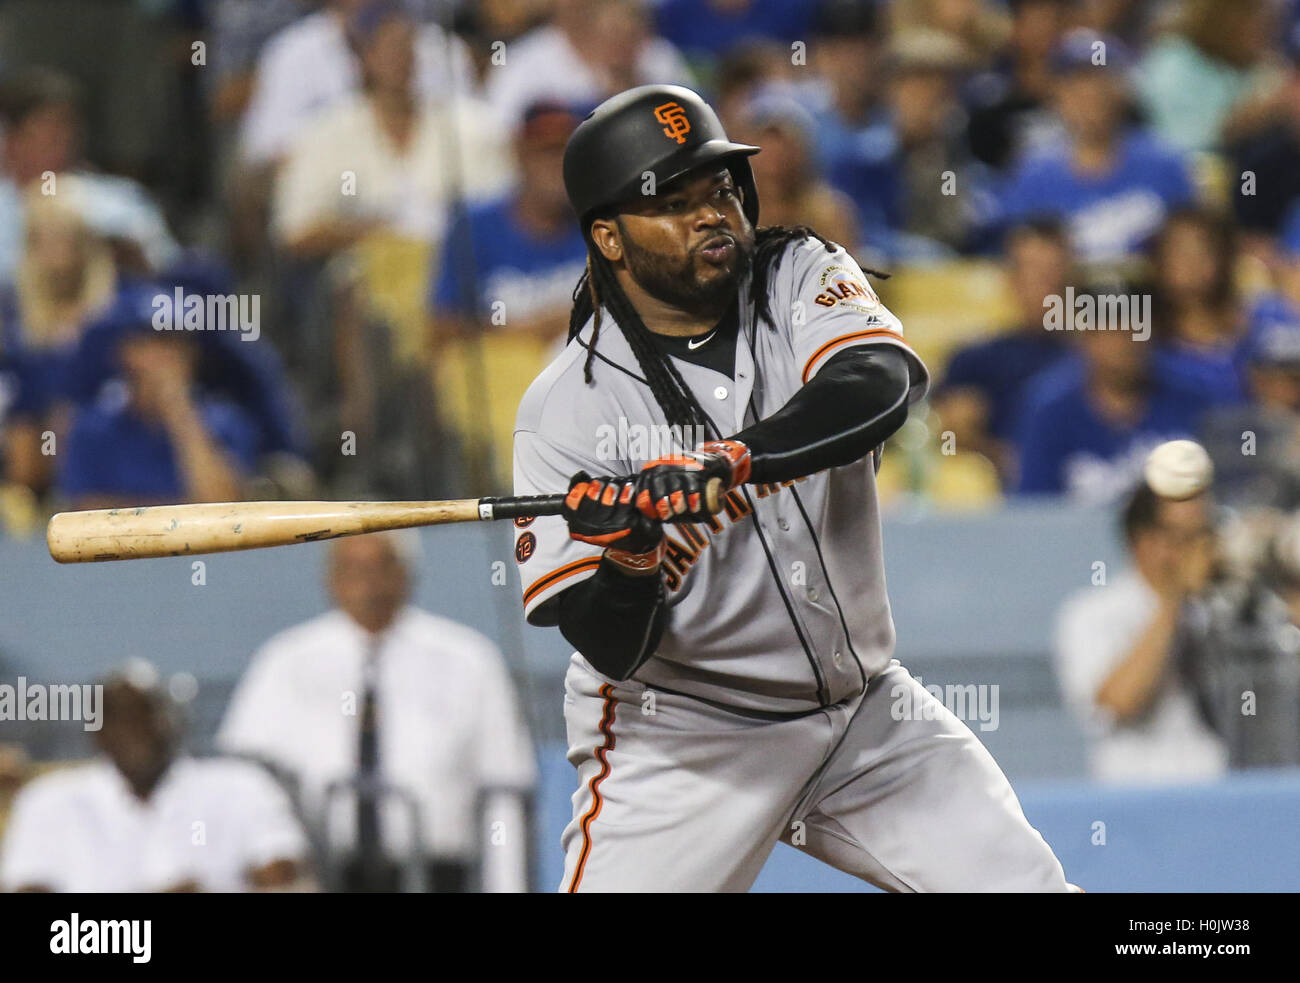 Los Angeles, California, EEUU. 20 Sep, 2016. San Francisco Giants catcher Johnny Cueto golpea la bola contra Los Imagen De Stock